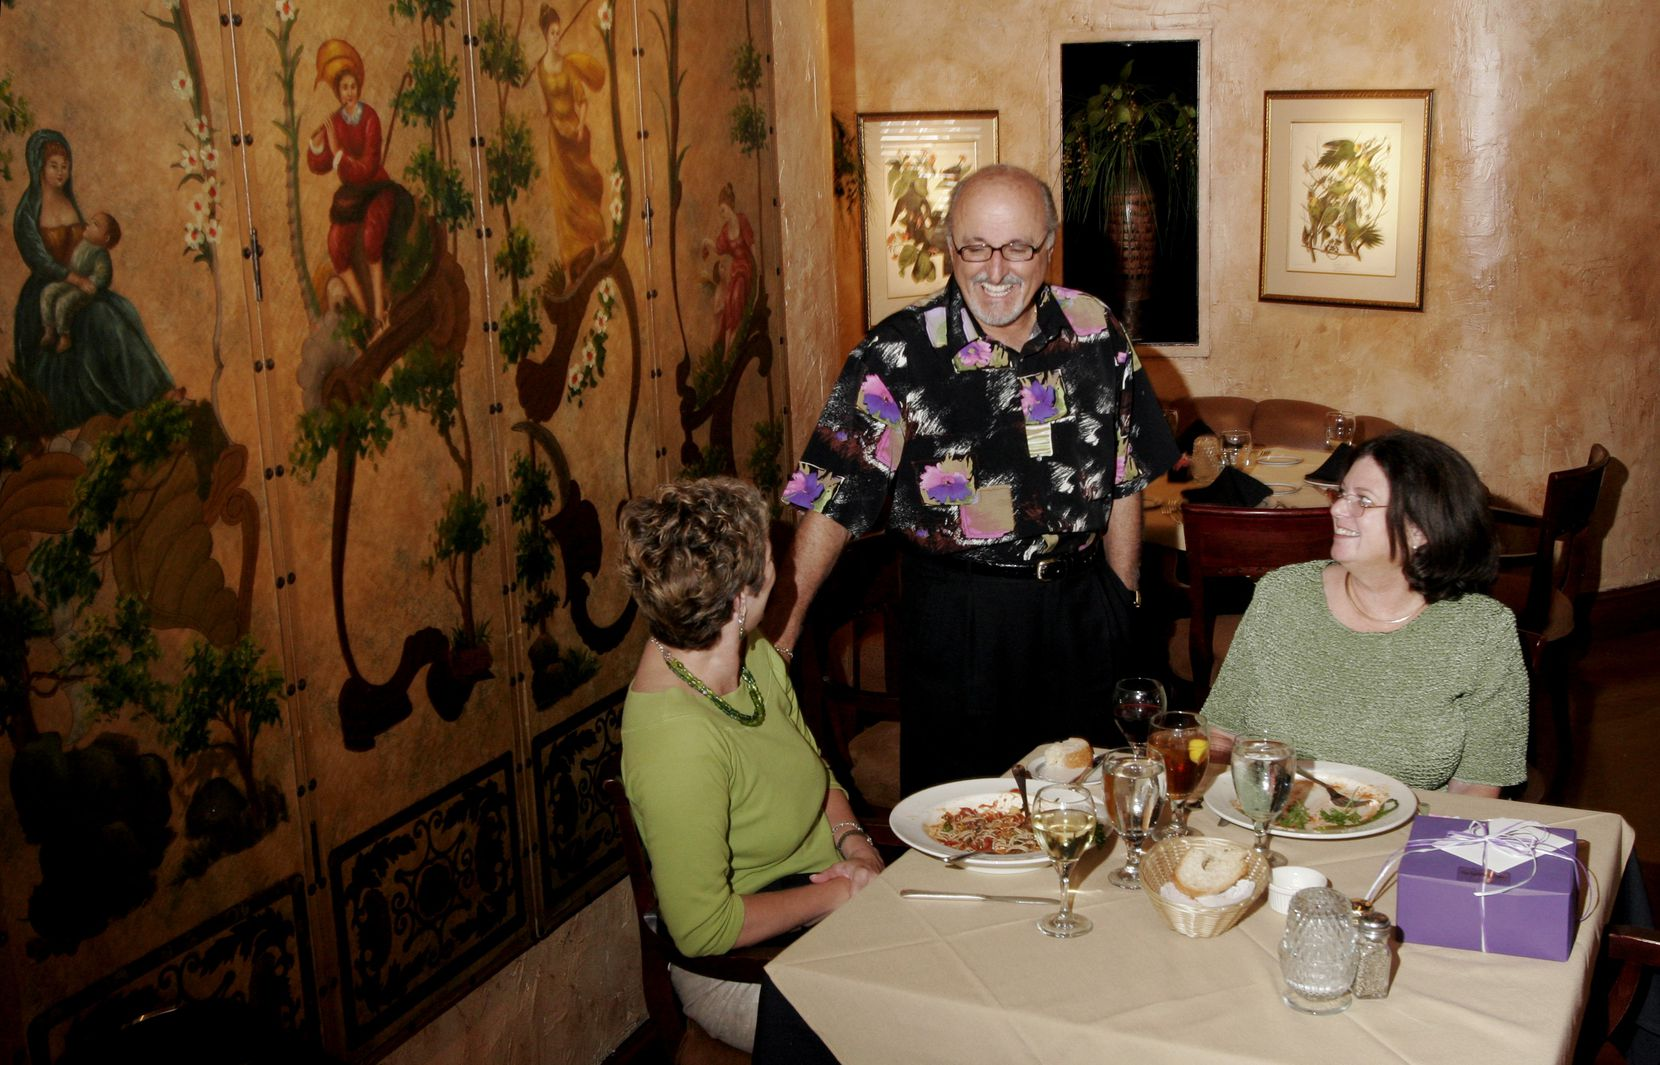 Diners visited with restaurateur Tom Ruggeri at Ruggeri's on Royal Lane in 2006.